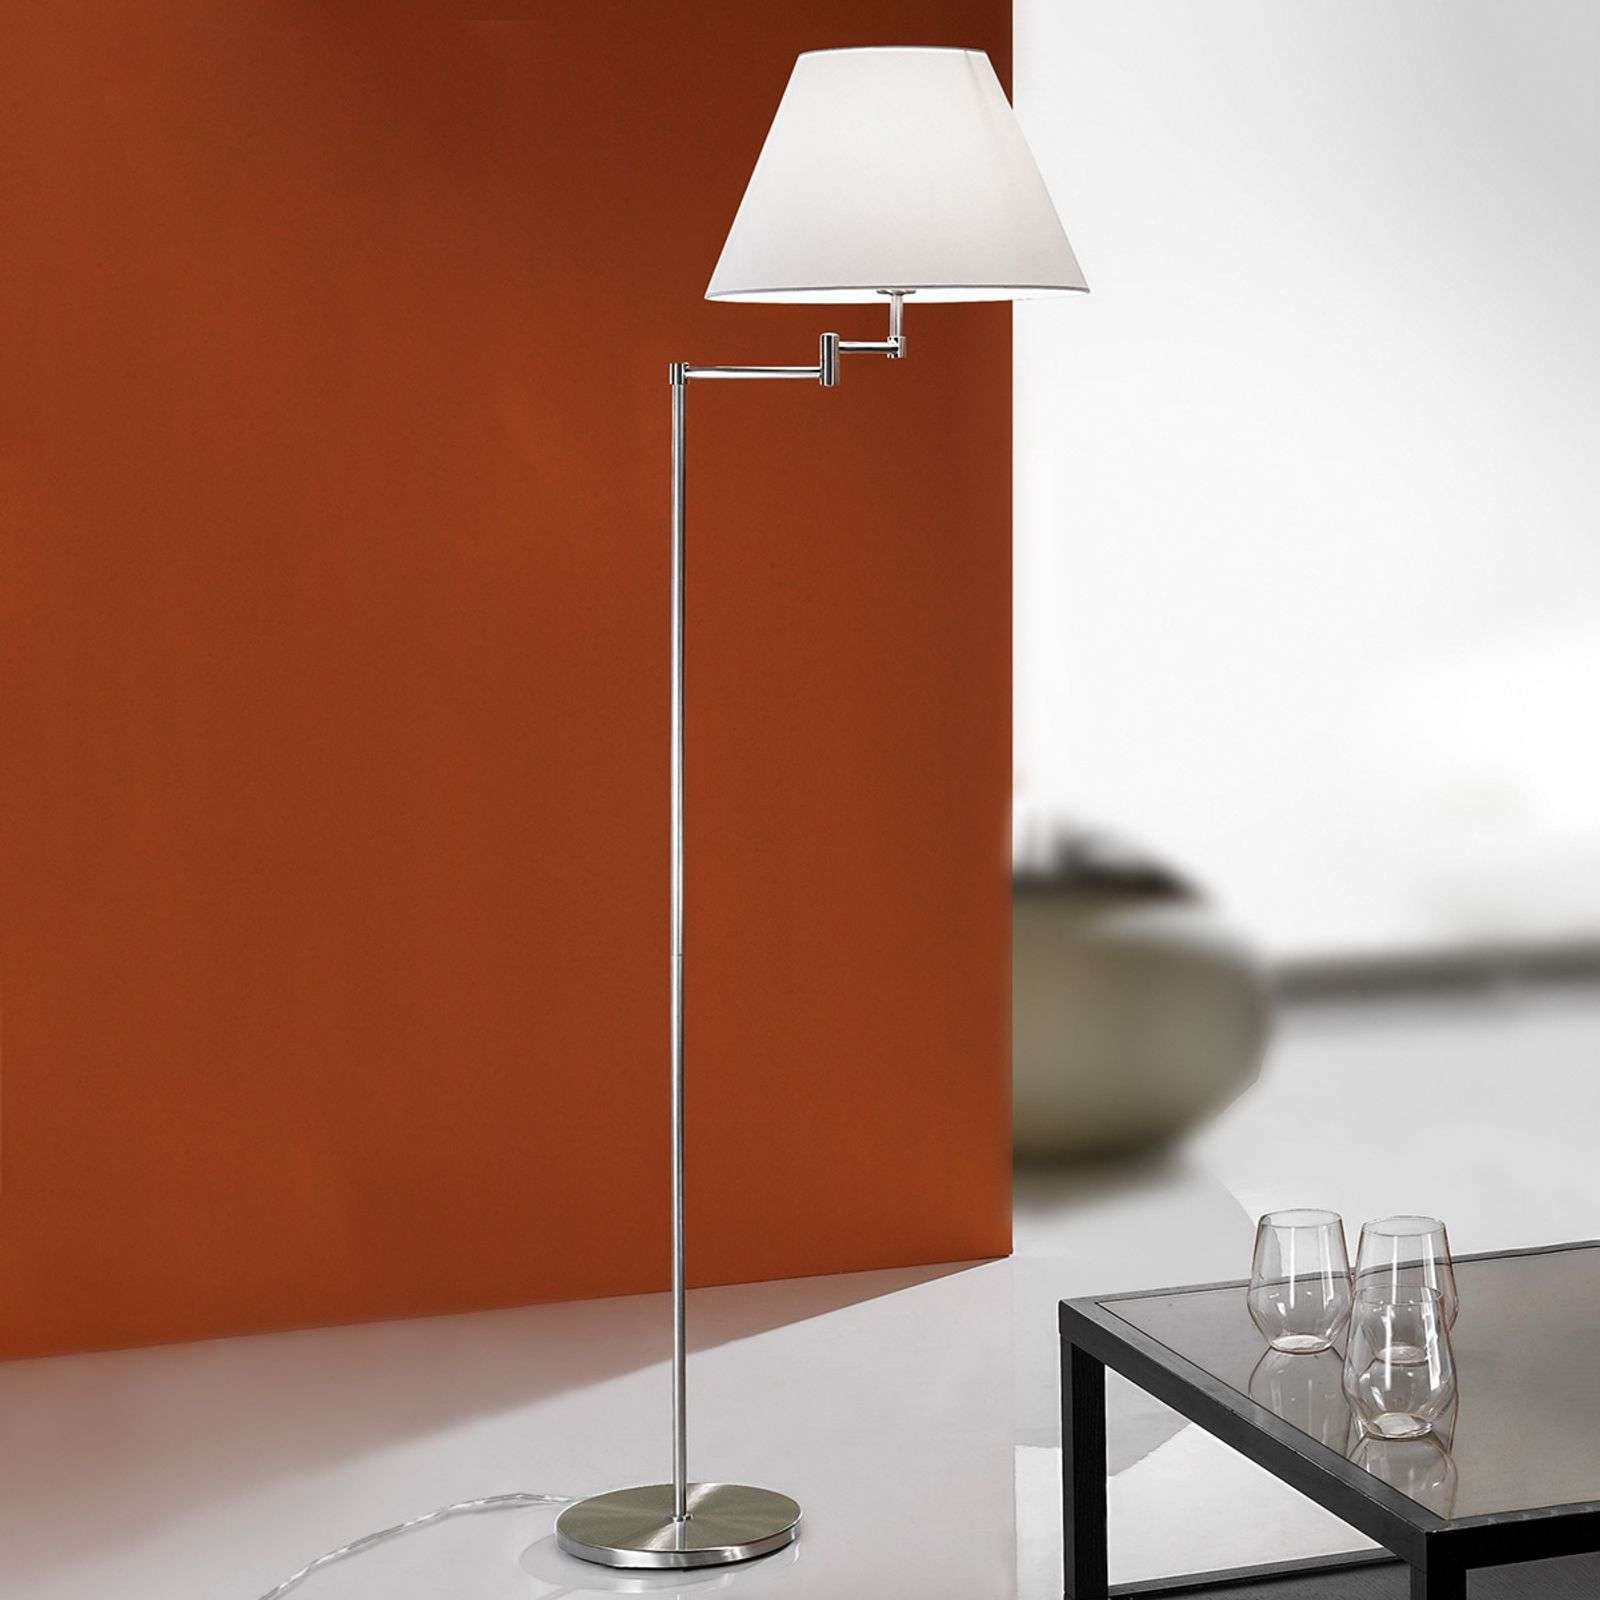 Noble lampadaire RIA, nickel mat